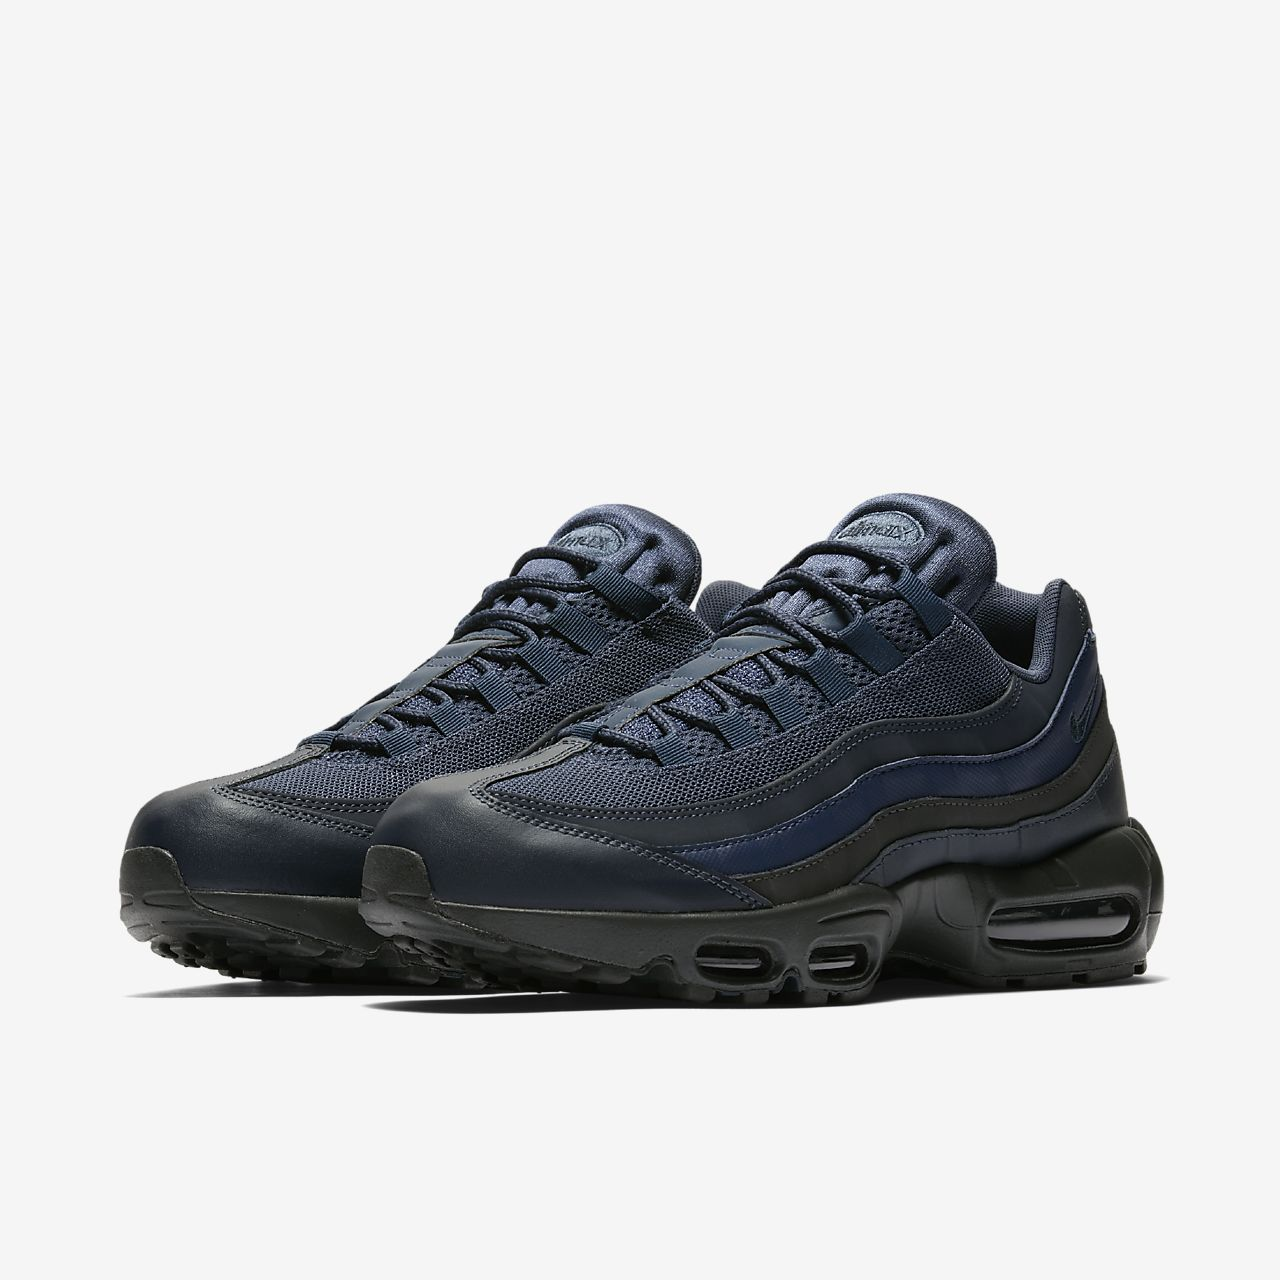 wholesale dealer 4619a 39df2 ... Chaussure Nike Air Max 95 Essential pour Homme